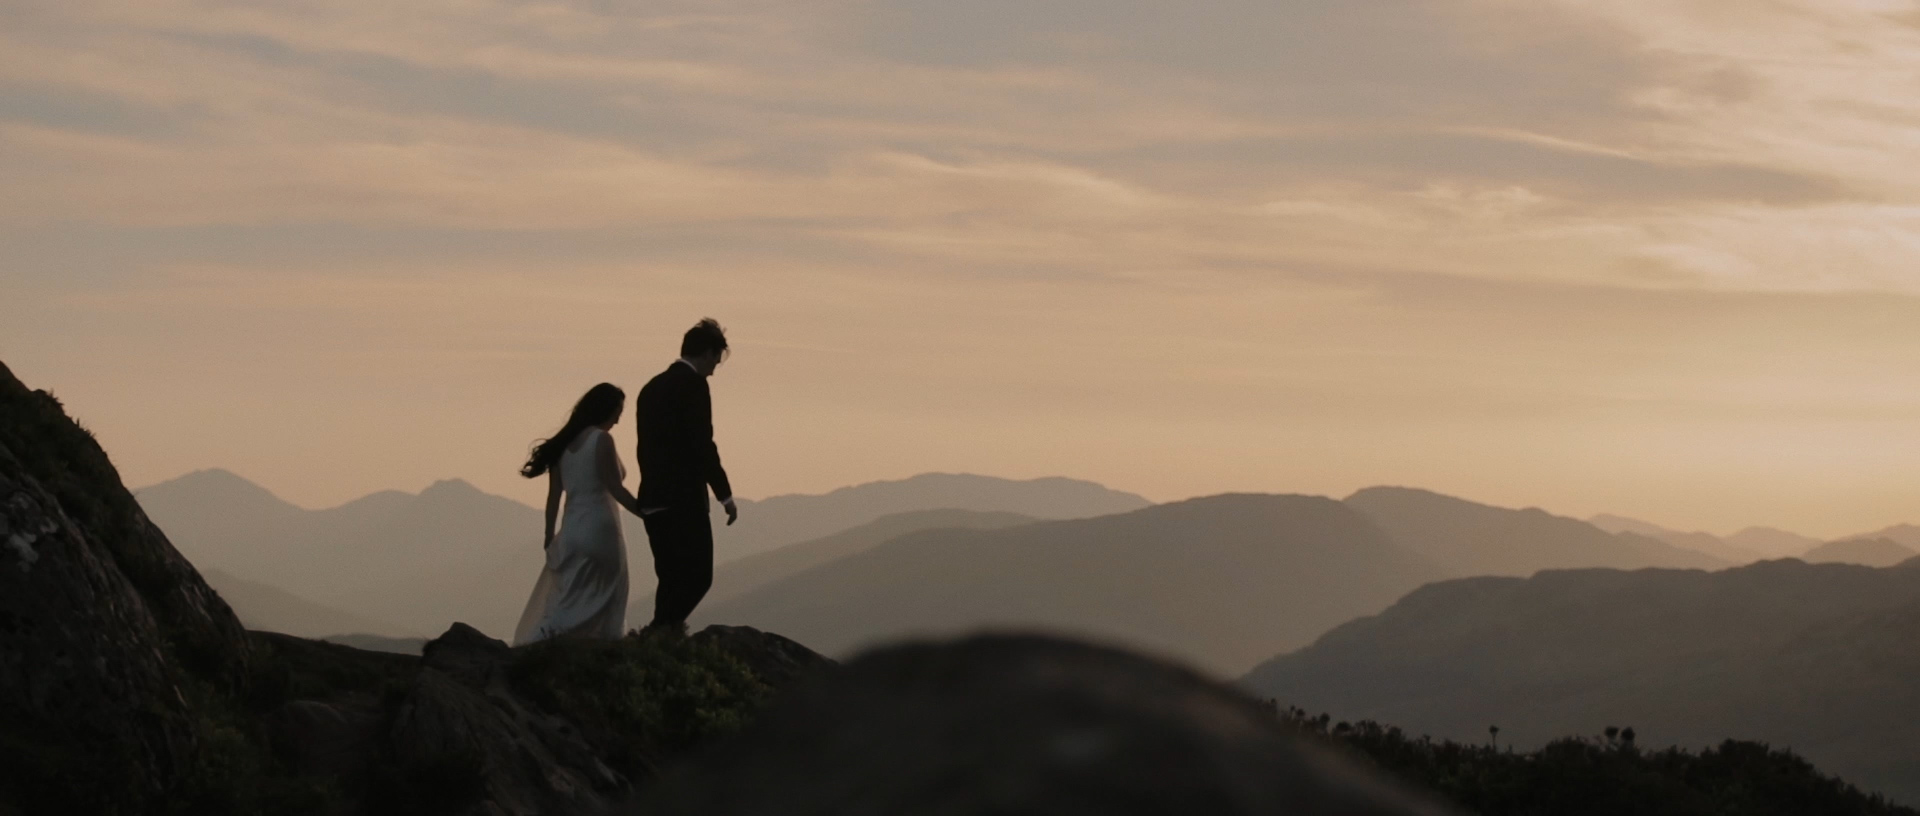 ayrshire-wedding-videographer_LL_01.jpg